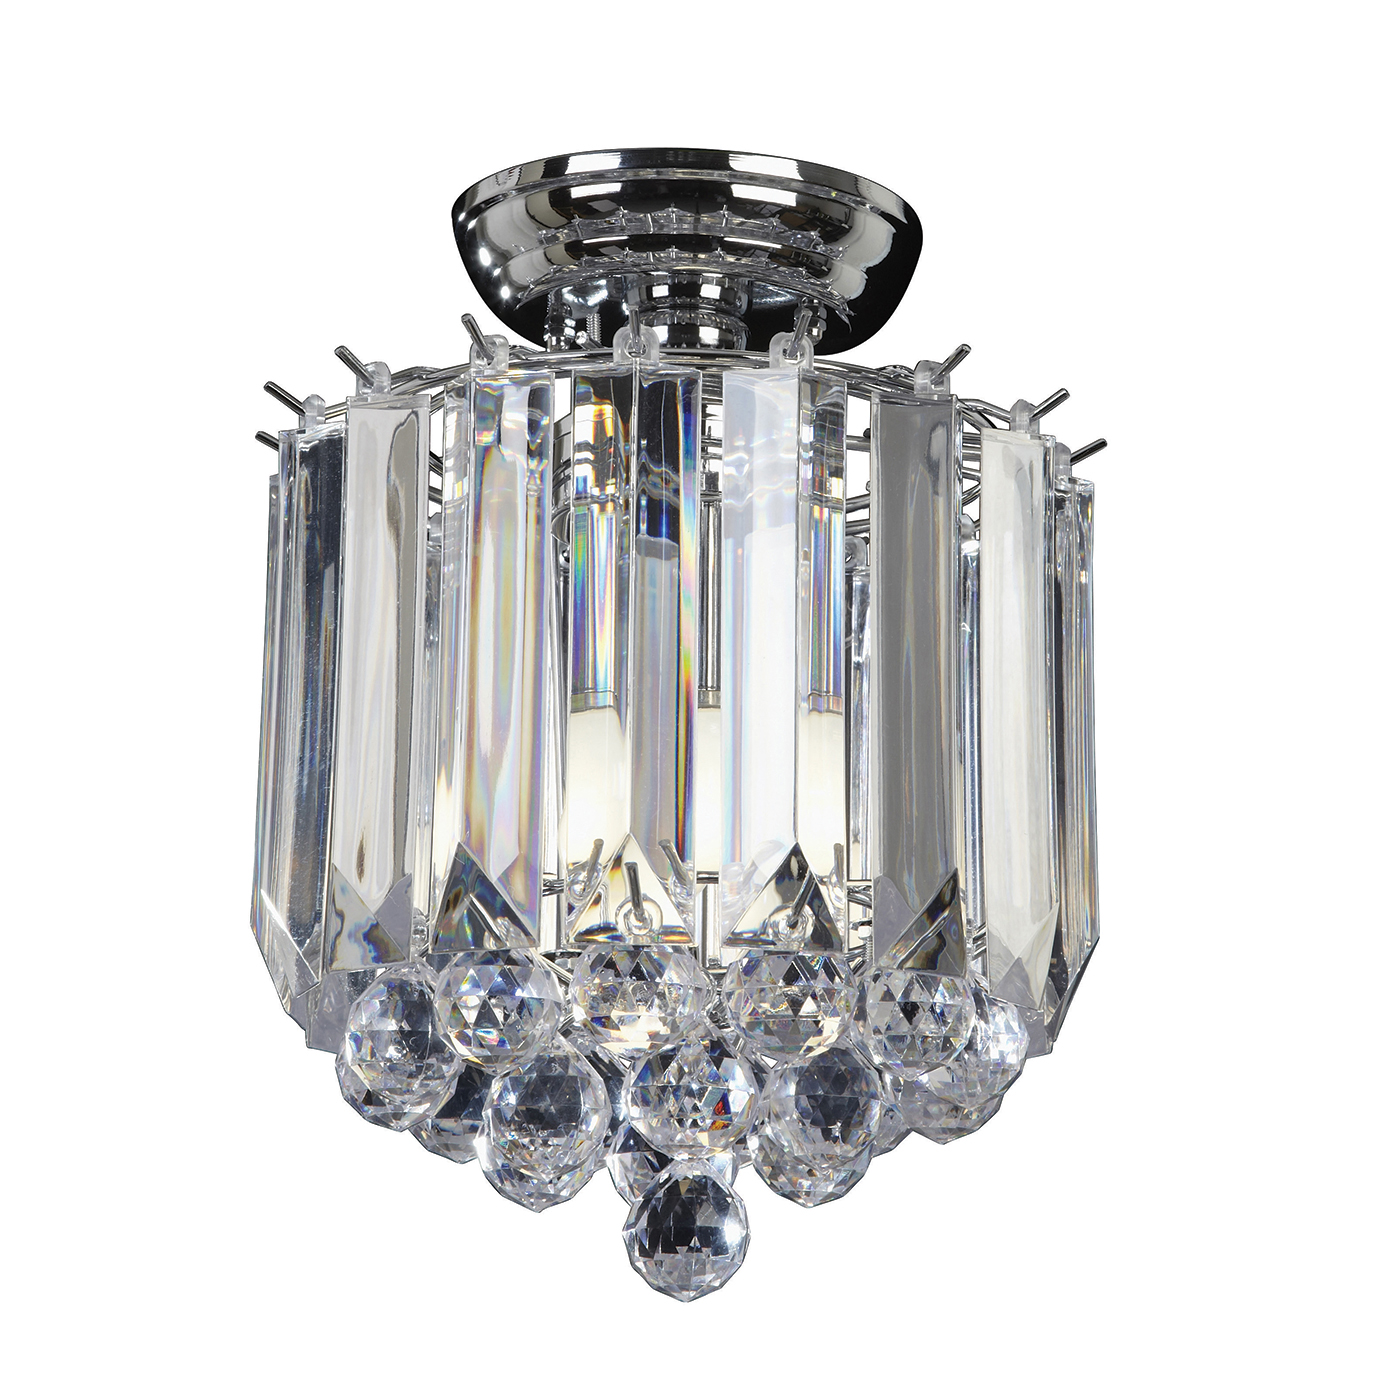 Endon Fargo flush ceiling light 2x 40W Chrome effect plate & clear acrylic Thumbnail 1